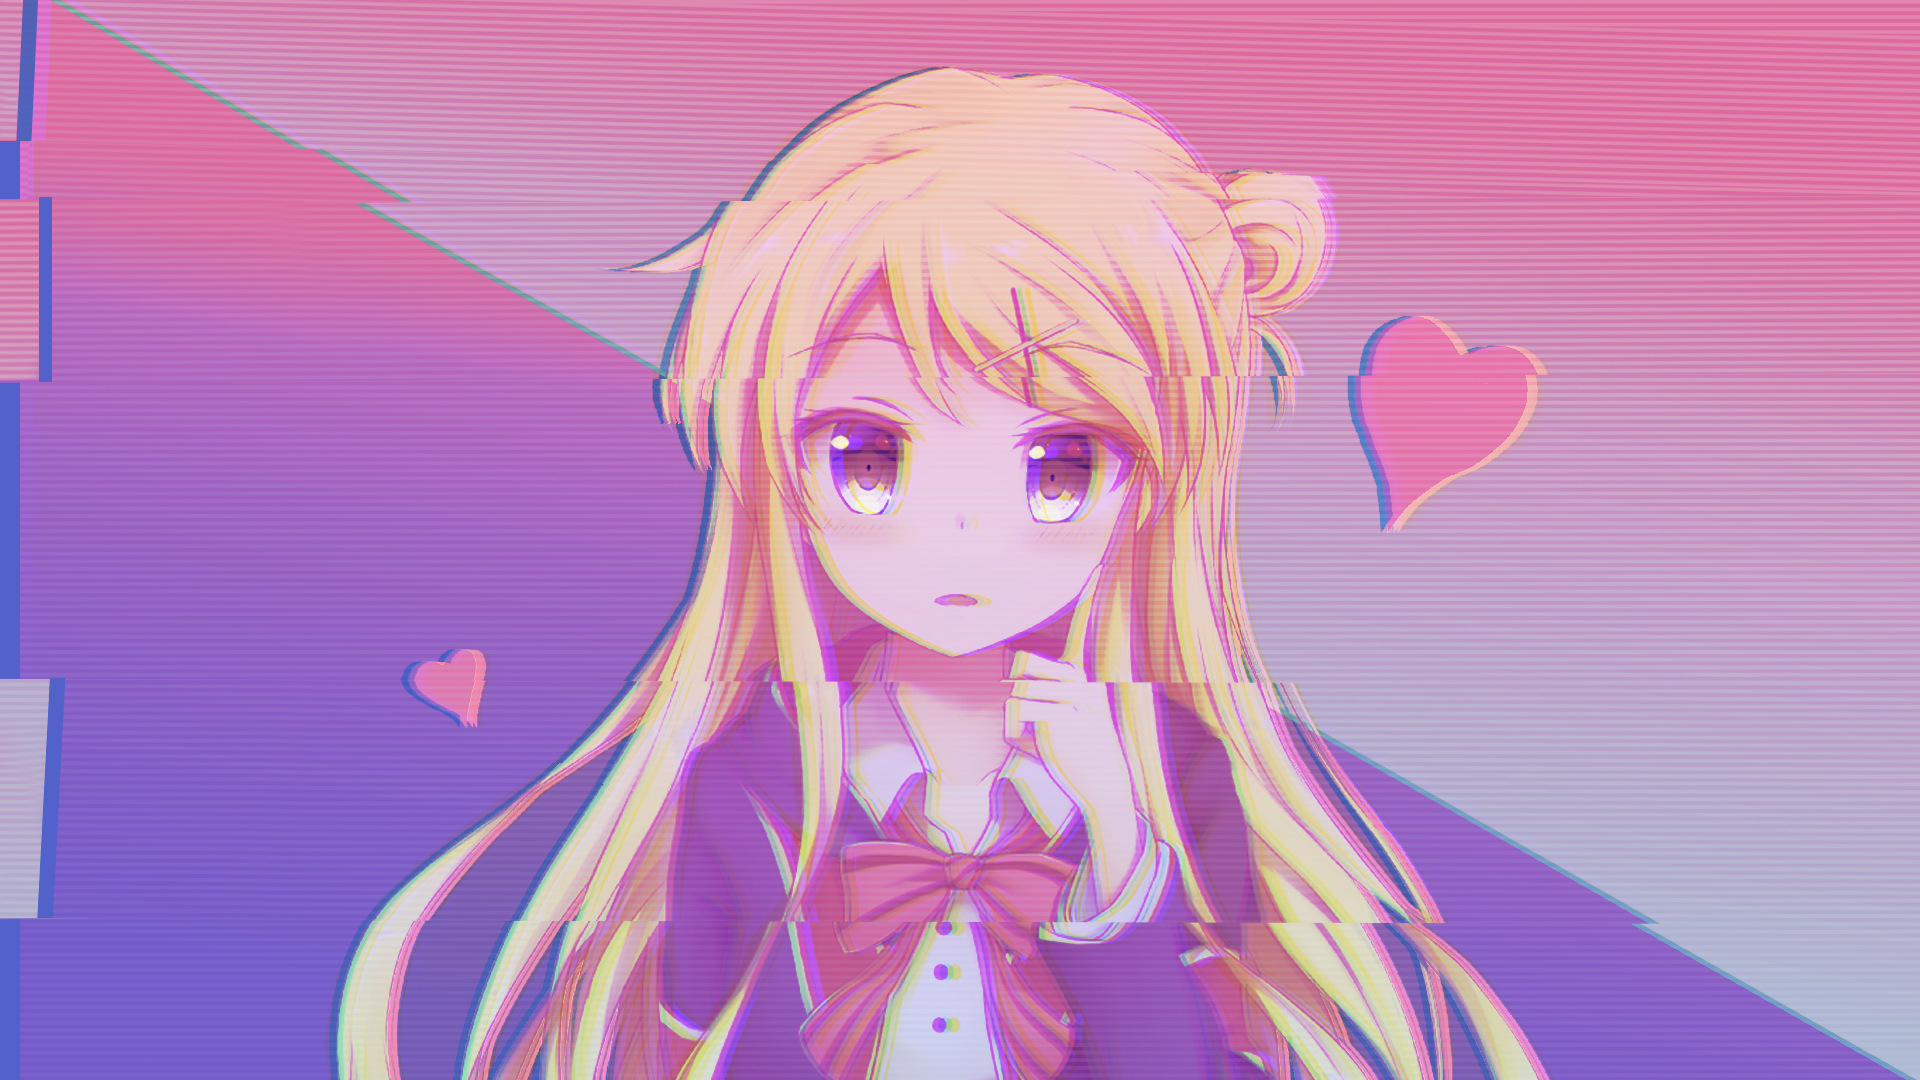 Aesthetic Anime Girl 1920x1080 Wallpapers - Wallpaper Cave